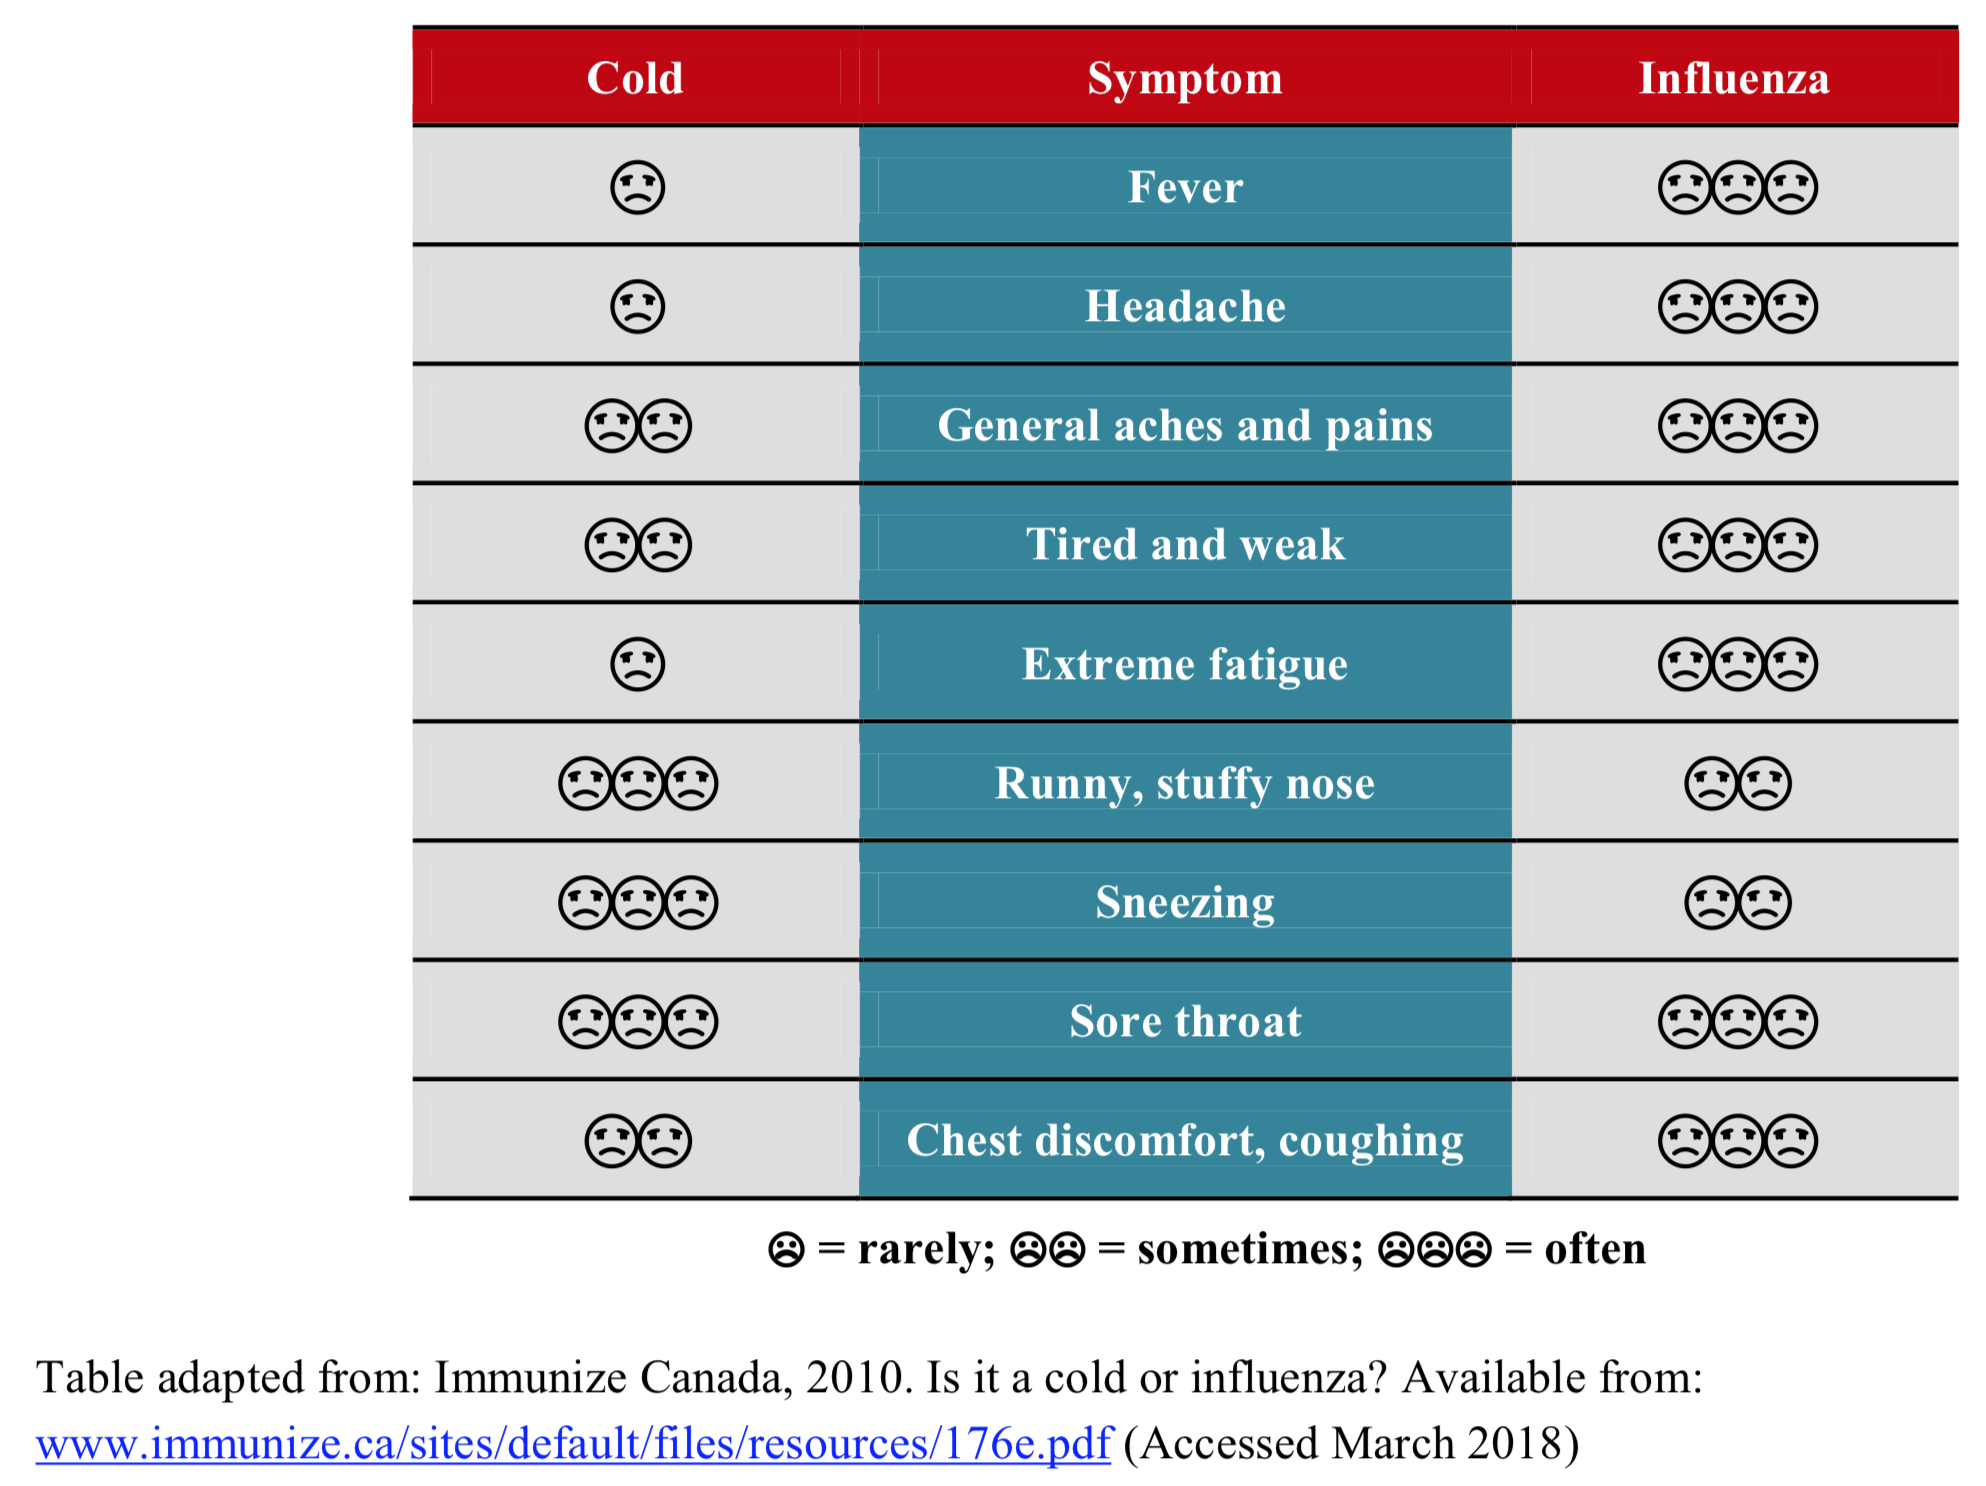 Influenza Vs cold symptoms